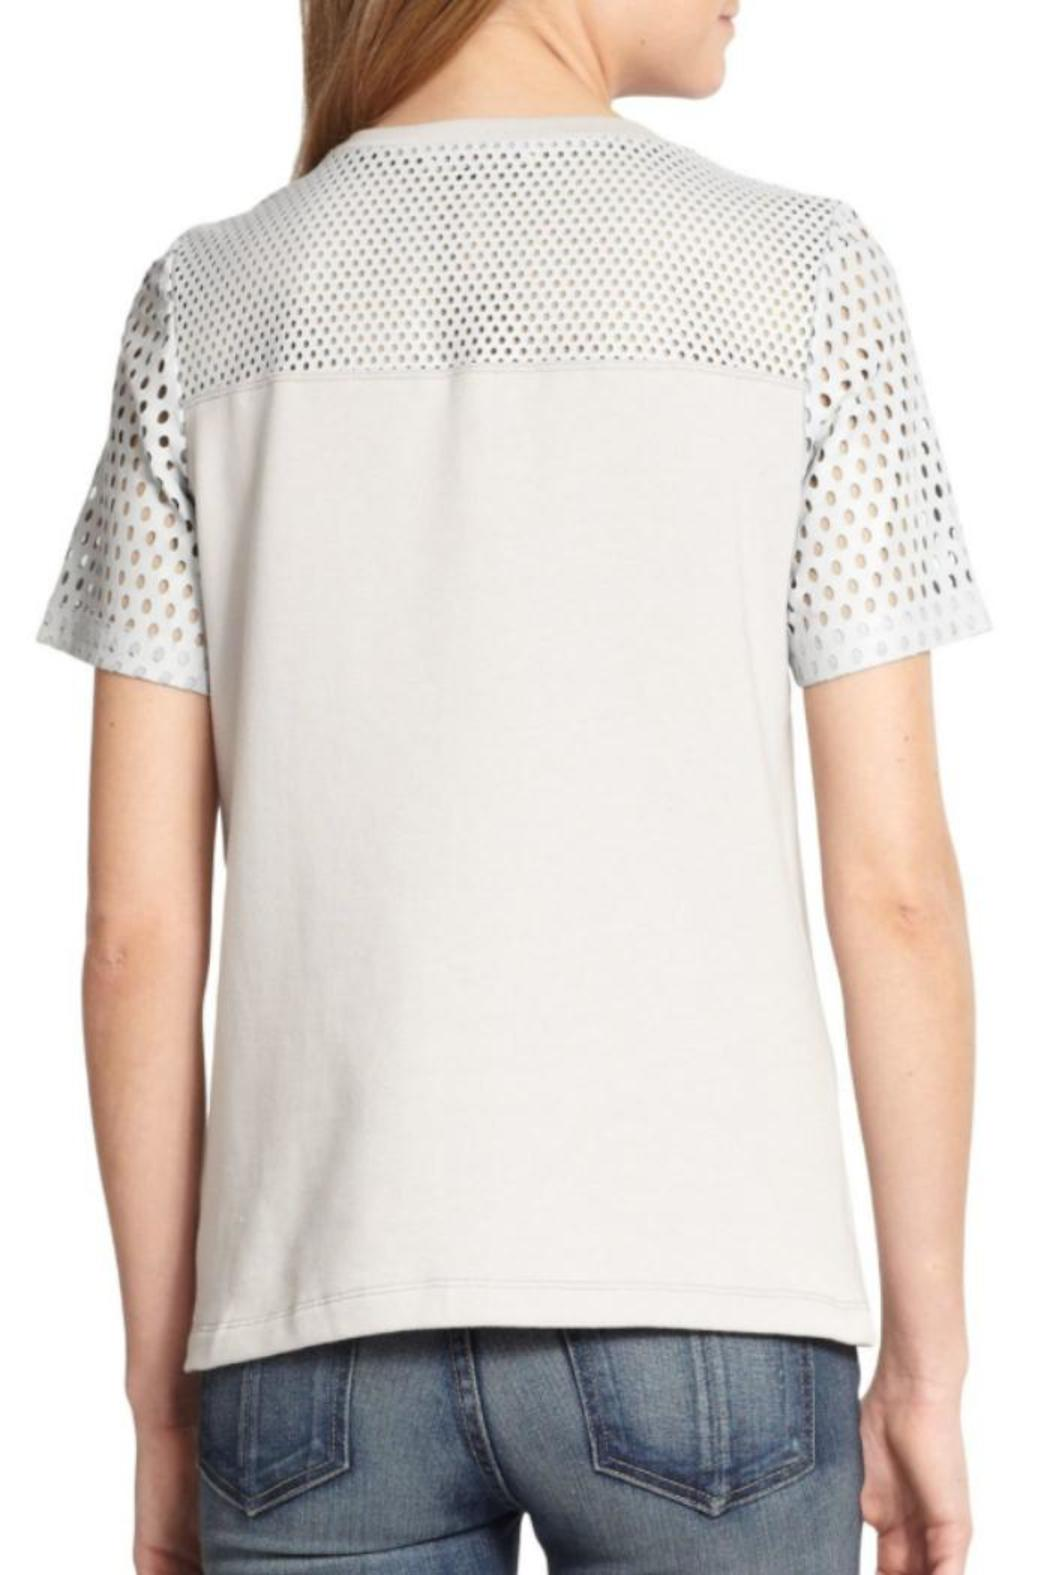 Rebecca Taylor Perforated Leather Top - Front Full Image